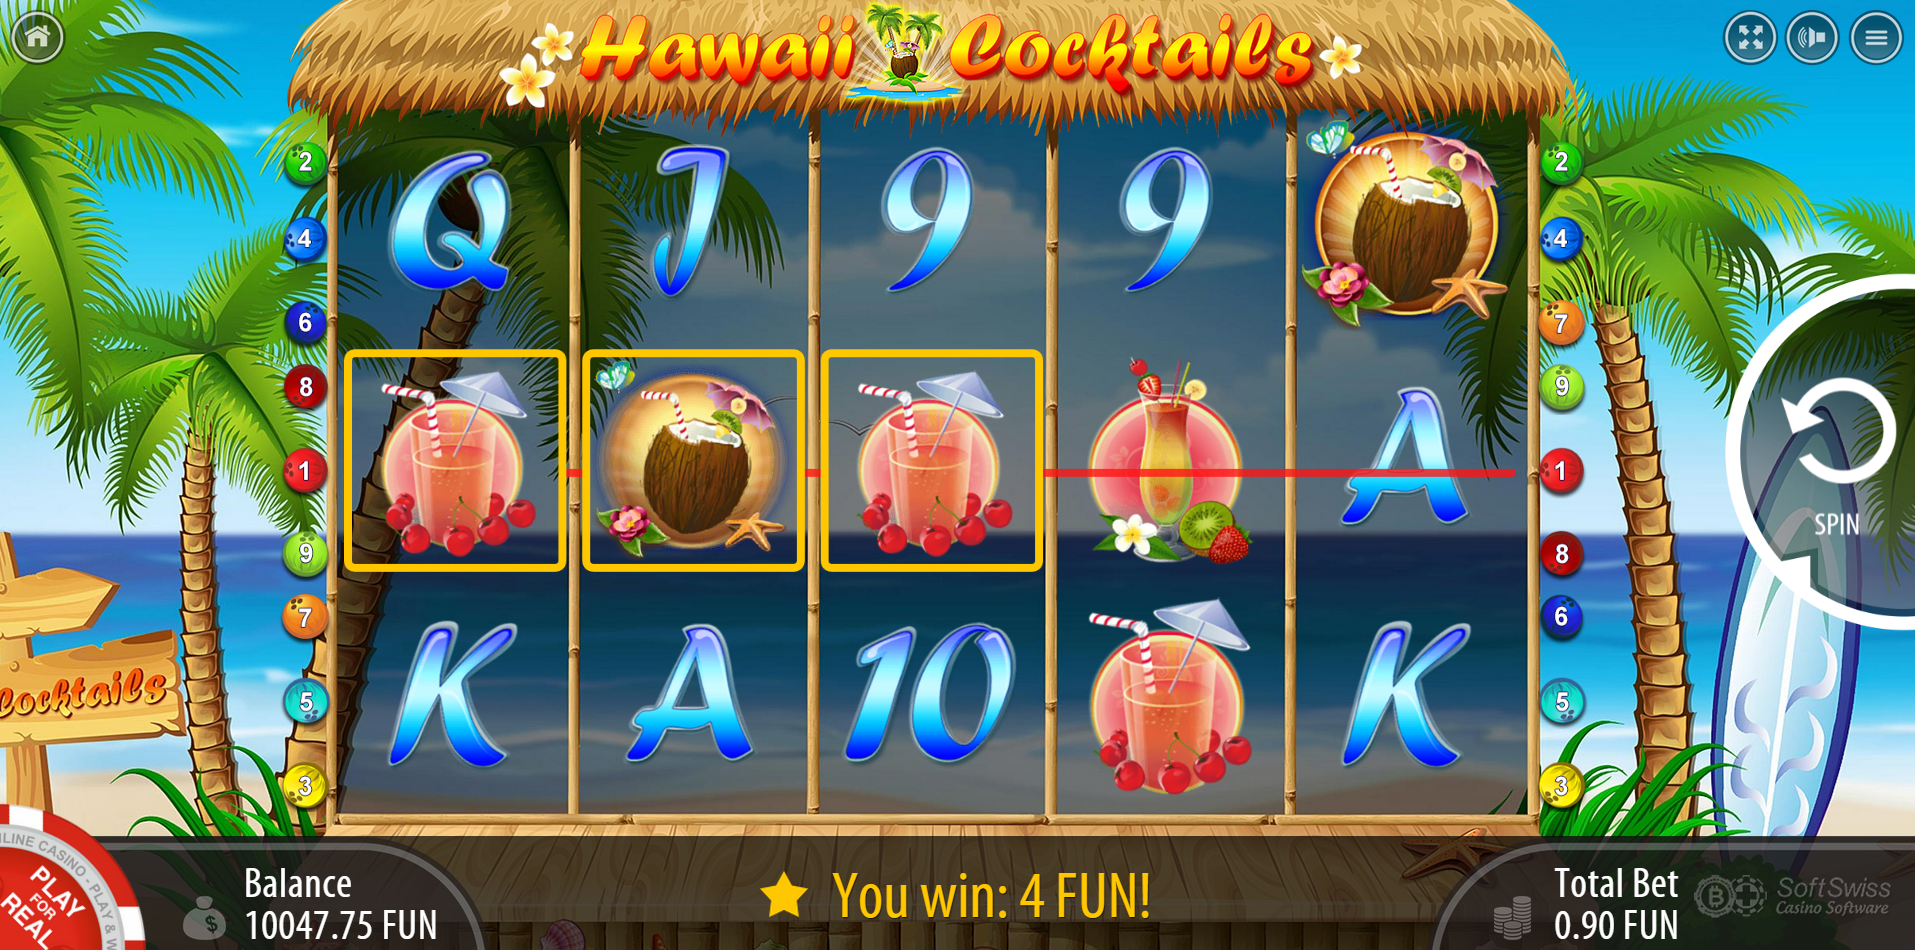 online casino review lucky lady casino